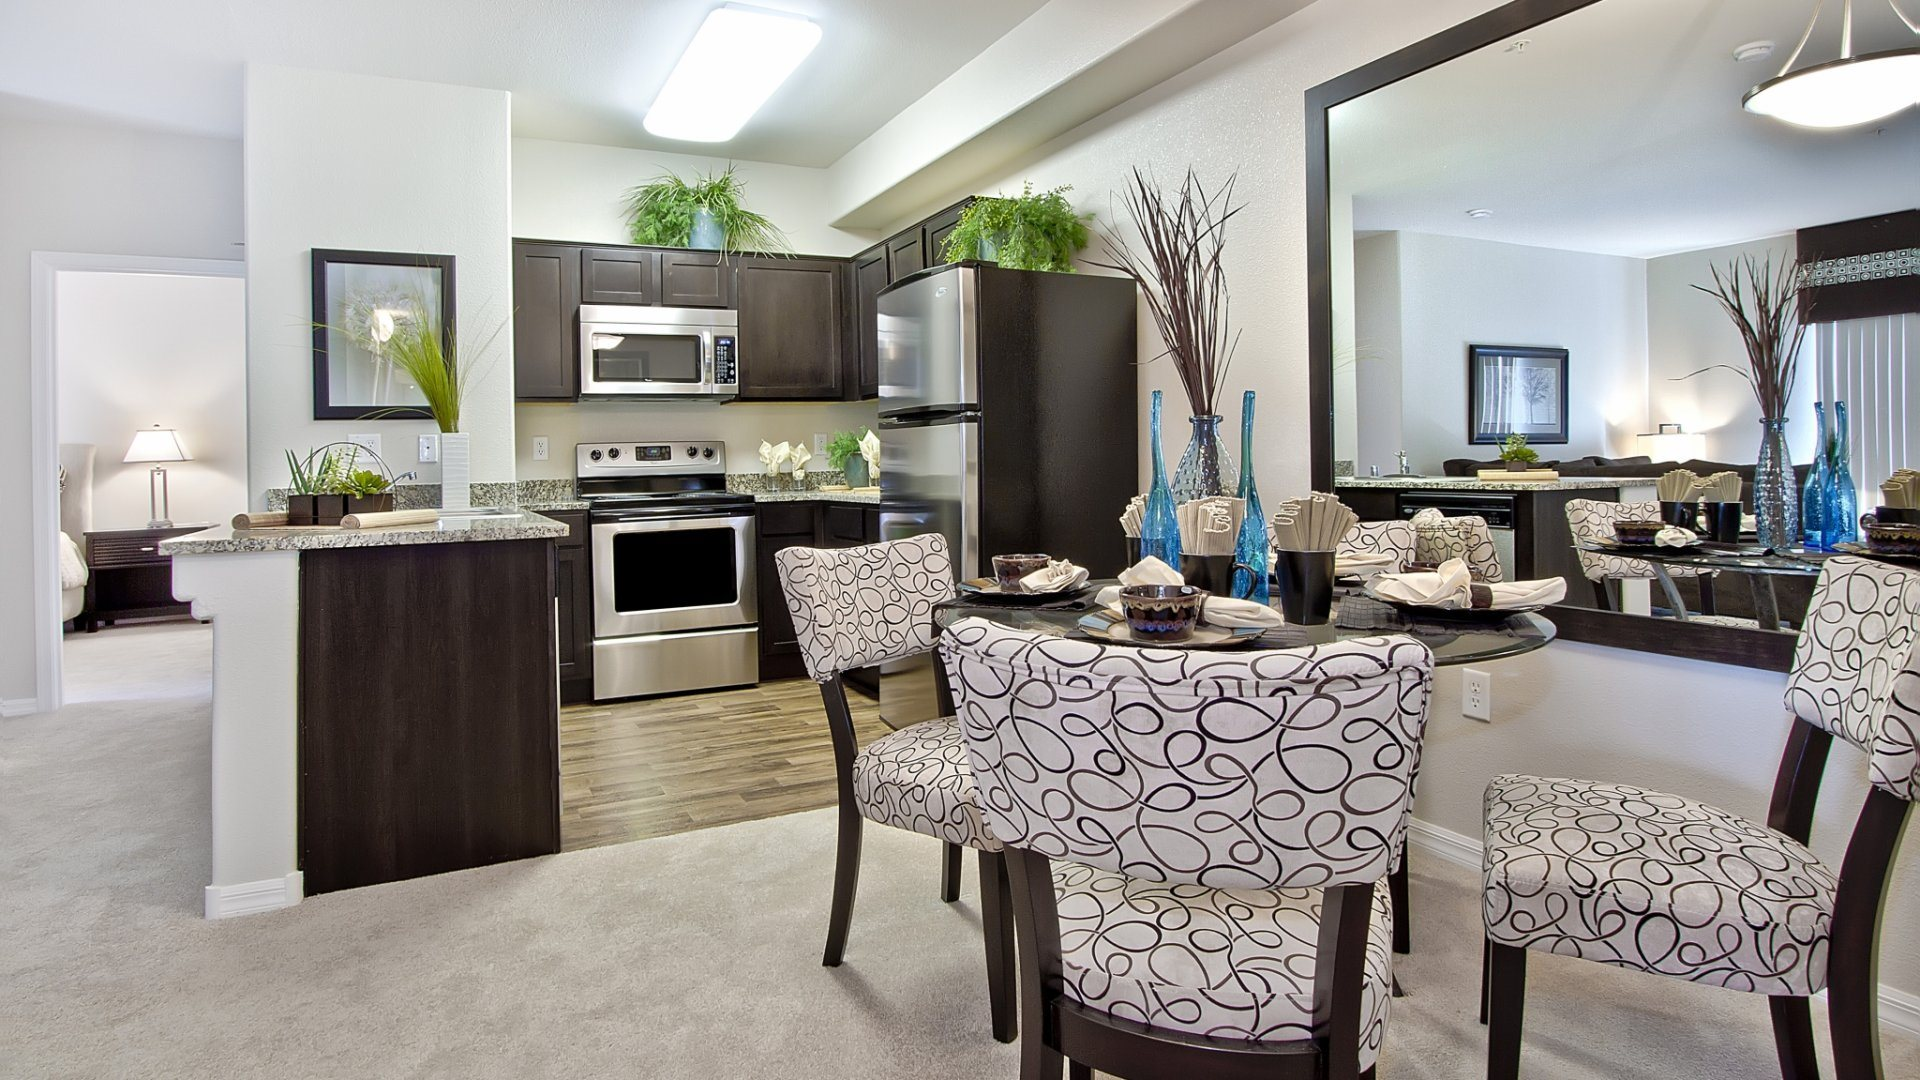 Separate Spaces for Dining at South Blvd, Nevada